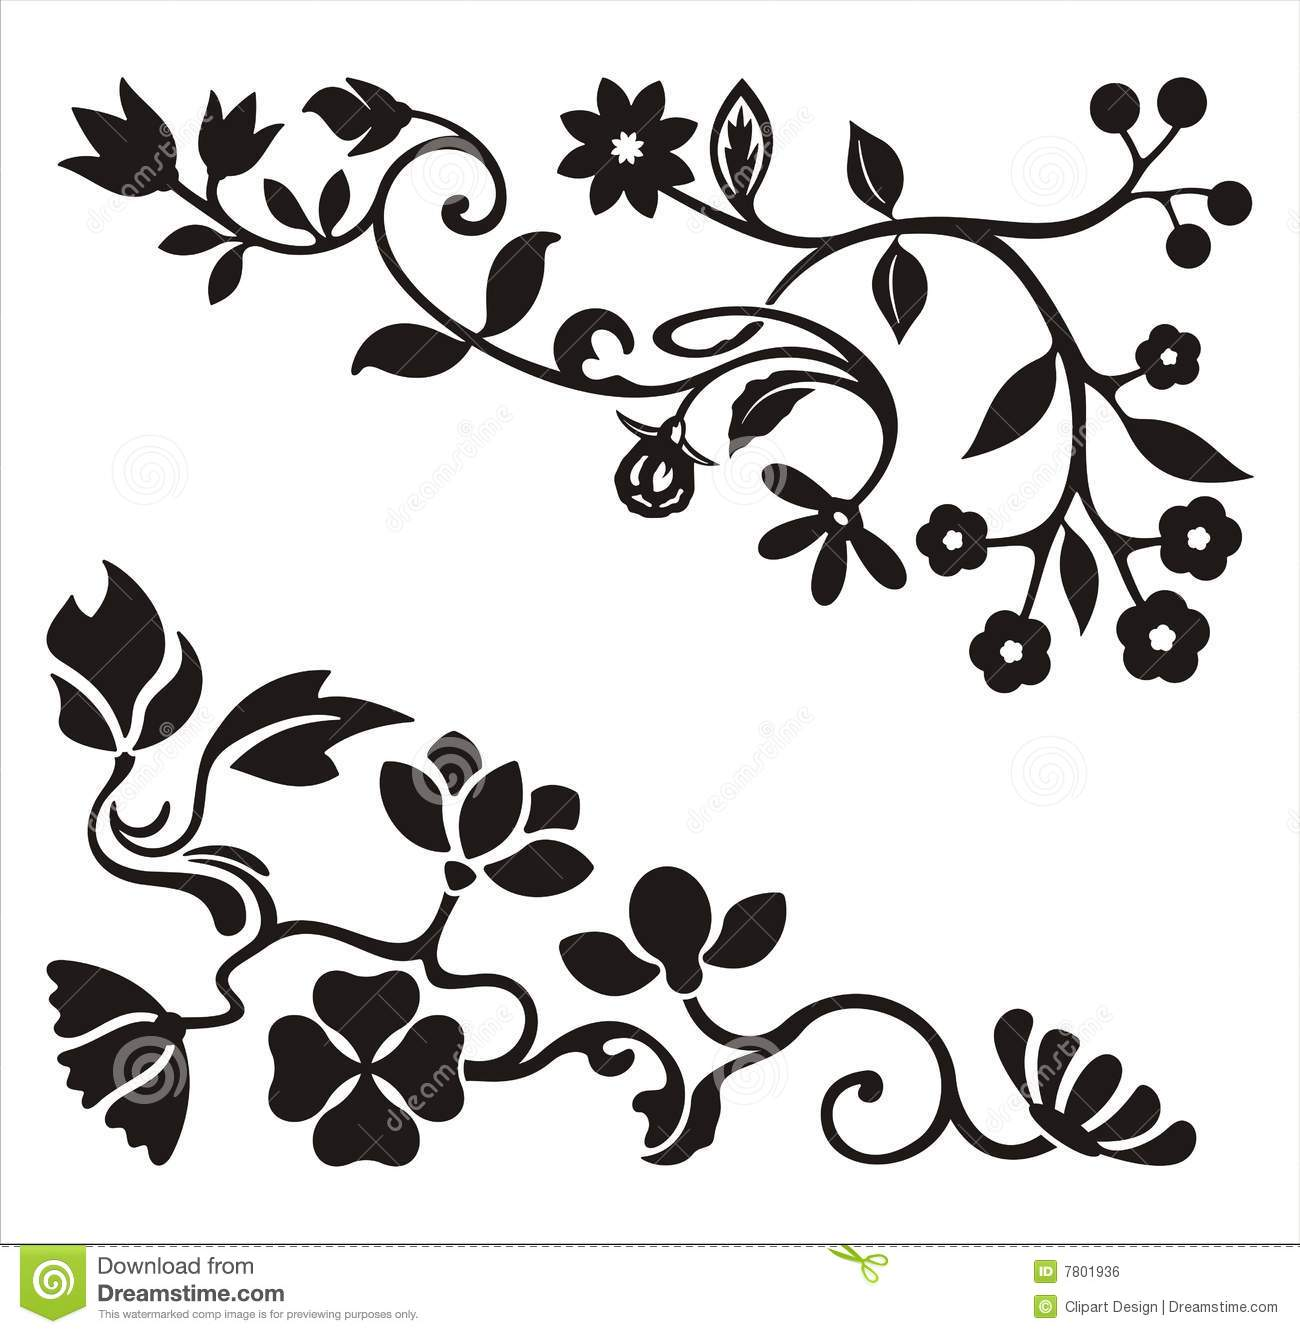 Fish Silhouette Vectors Printable Cut Templates together with Printable Decorative Border Stencils 2 as well Shape Coloring Pages in addition Digital Floral Design Clip Art also Grenade Vector Pattern. on flower stencil pattern free